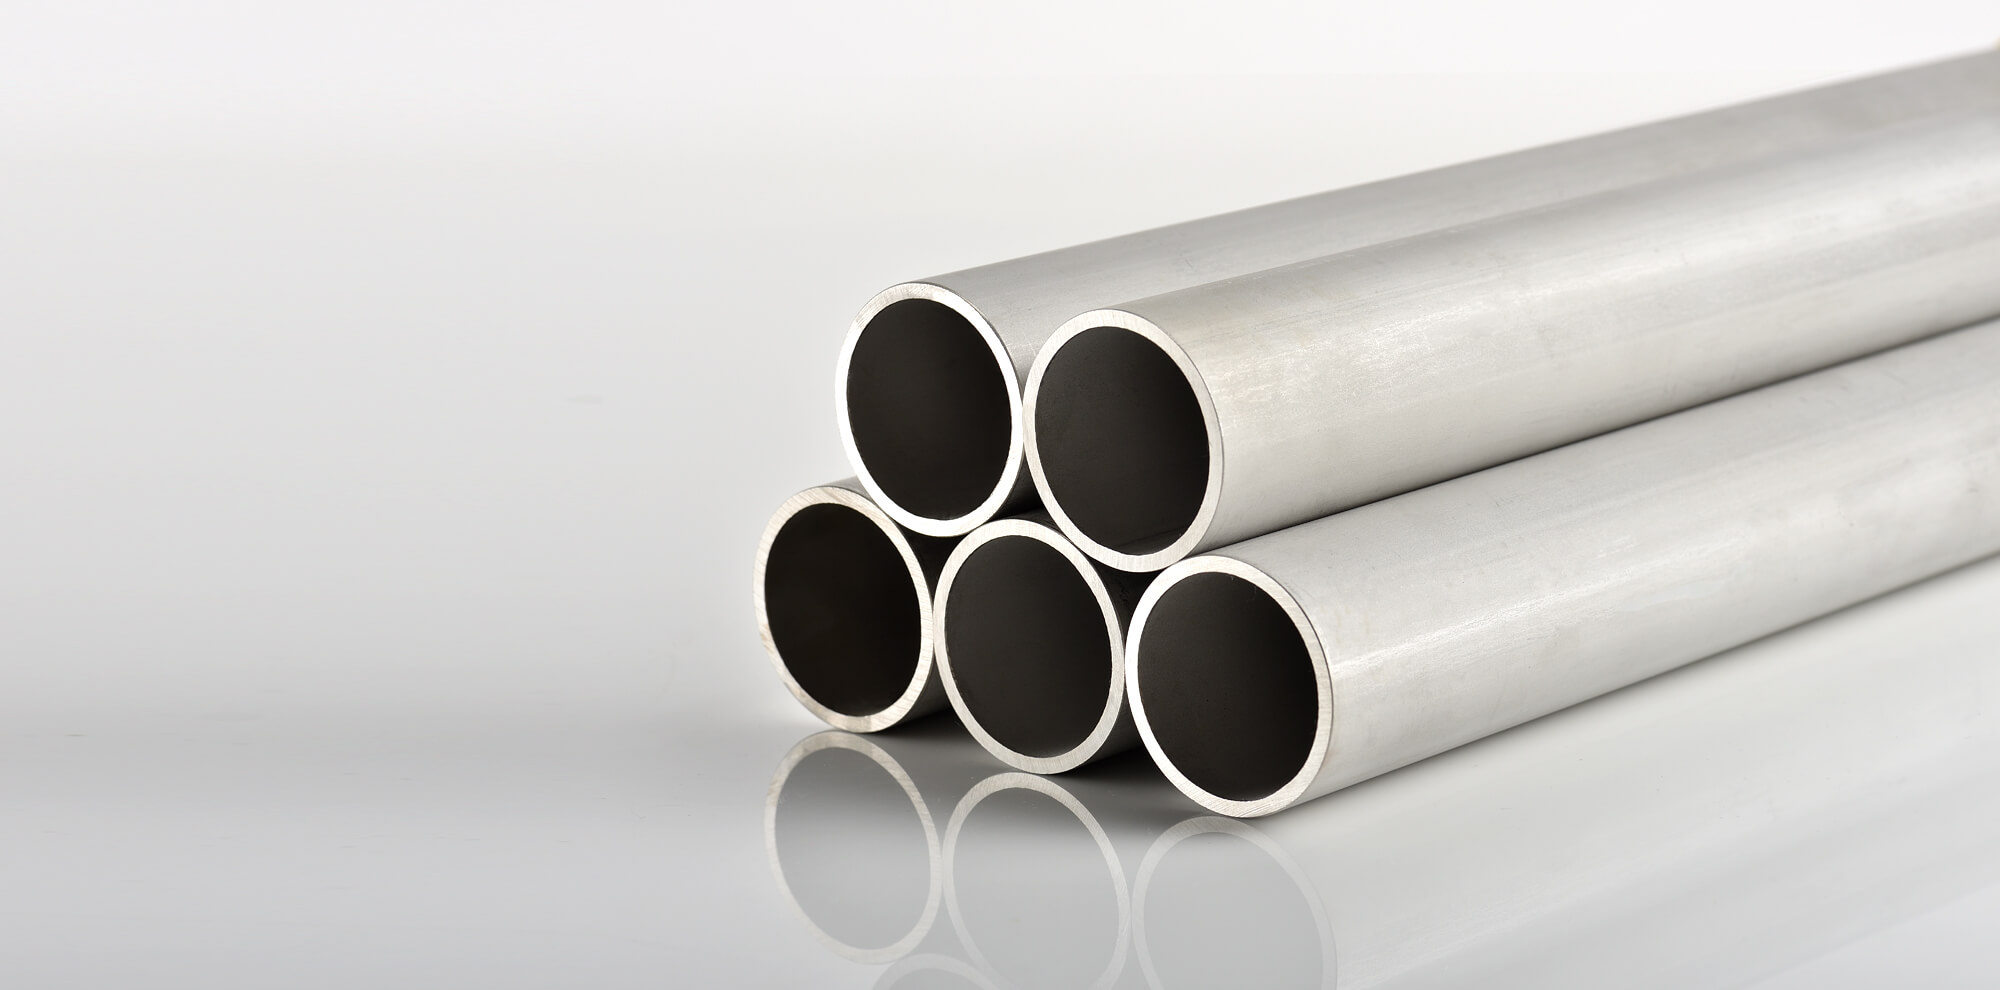 22mm stainless steel pipe